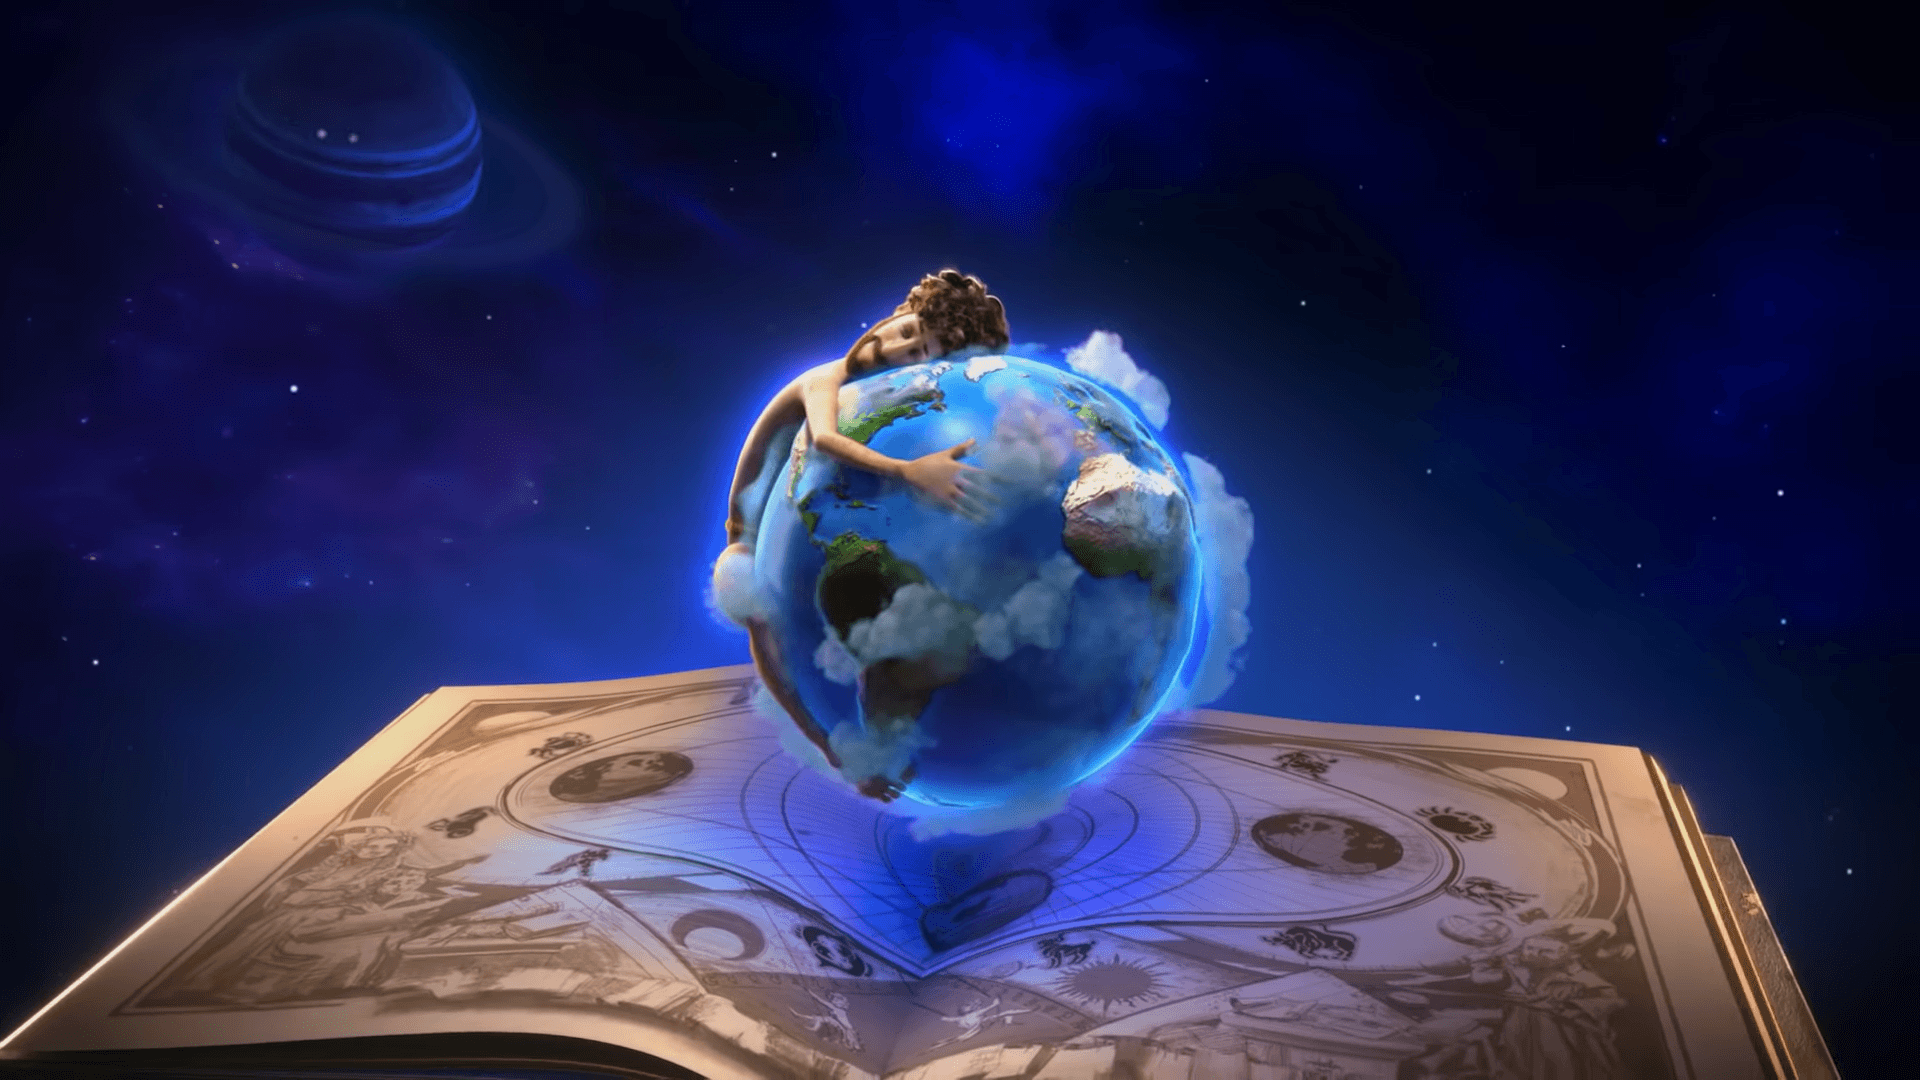 Lil Dicky Earth Wallpapers - Wallpaper Cave